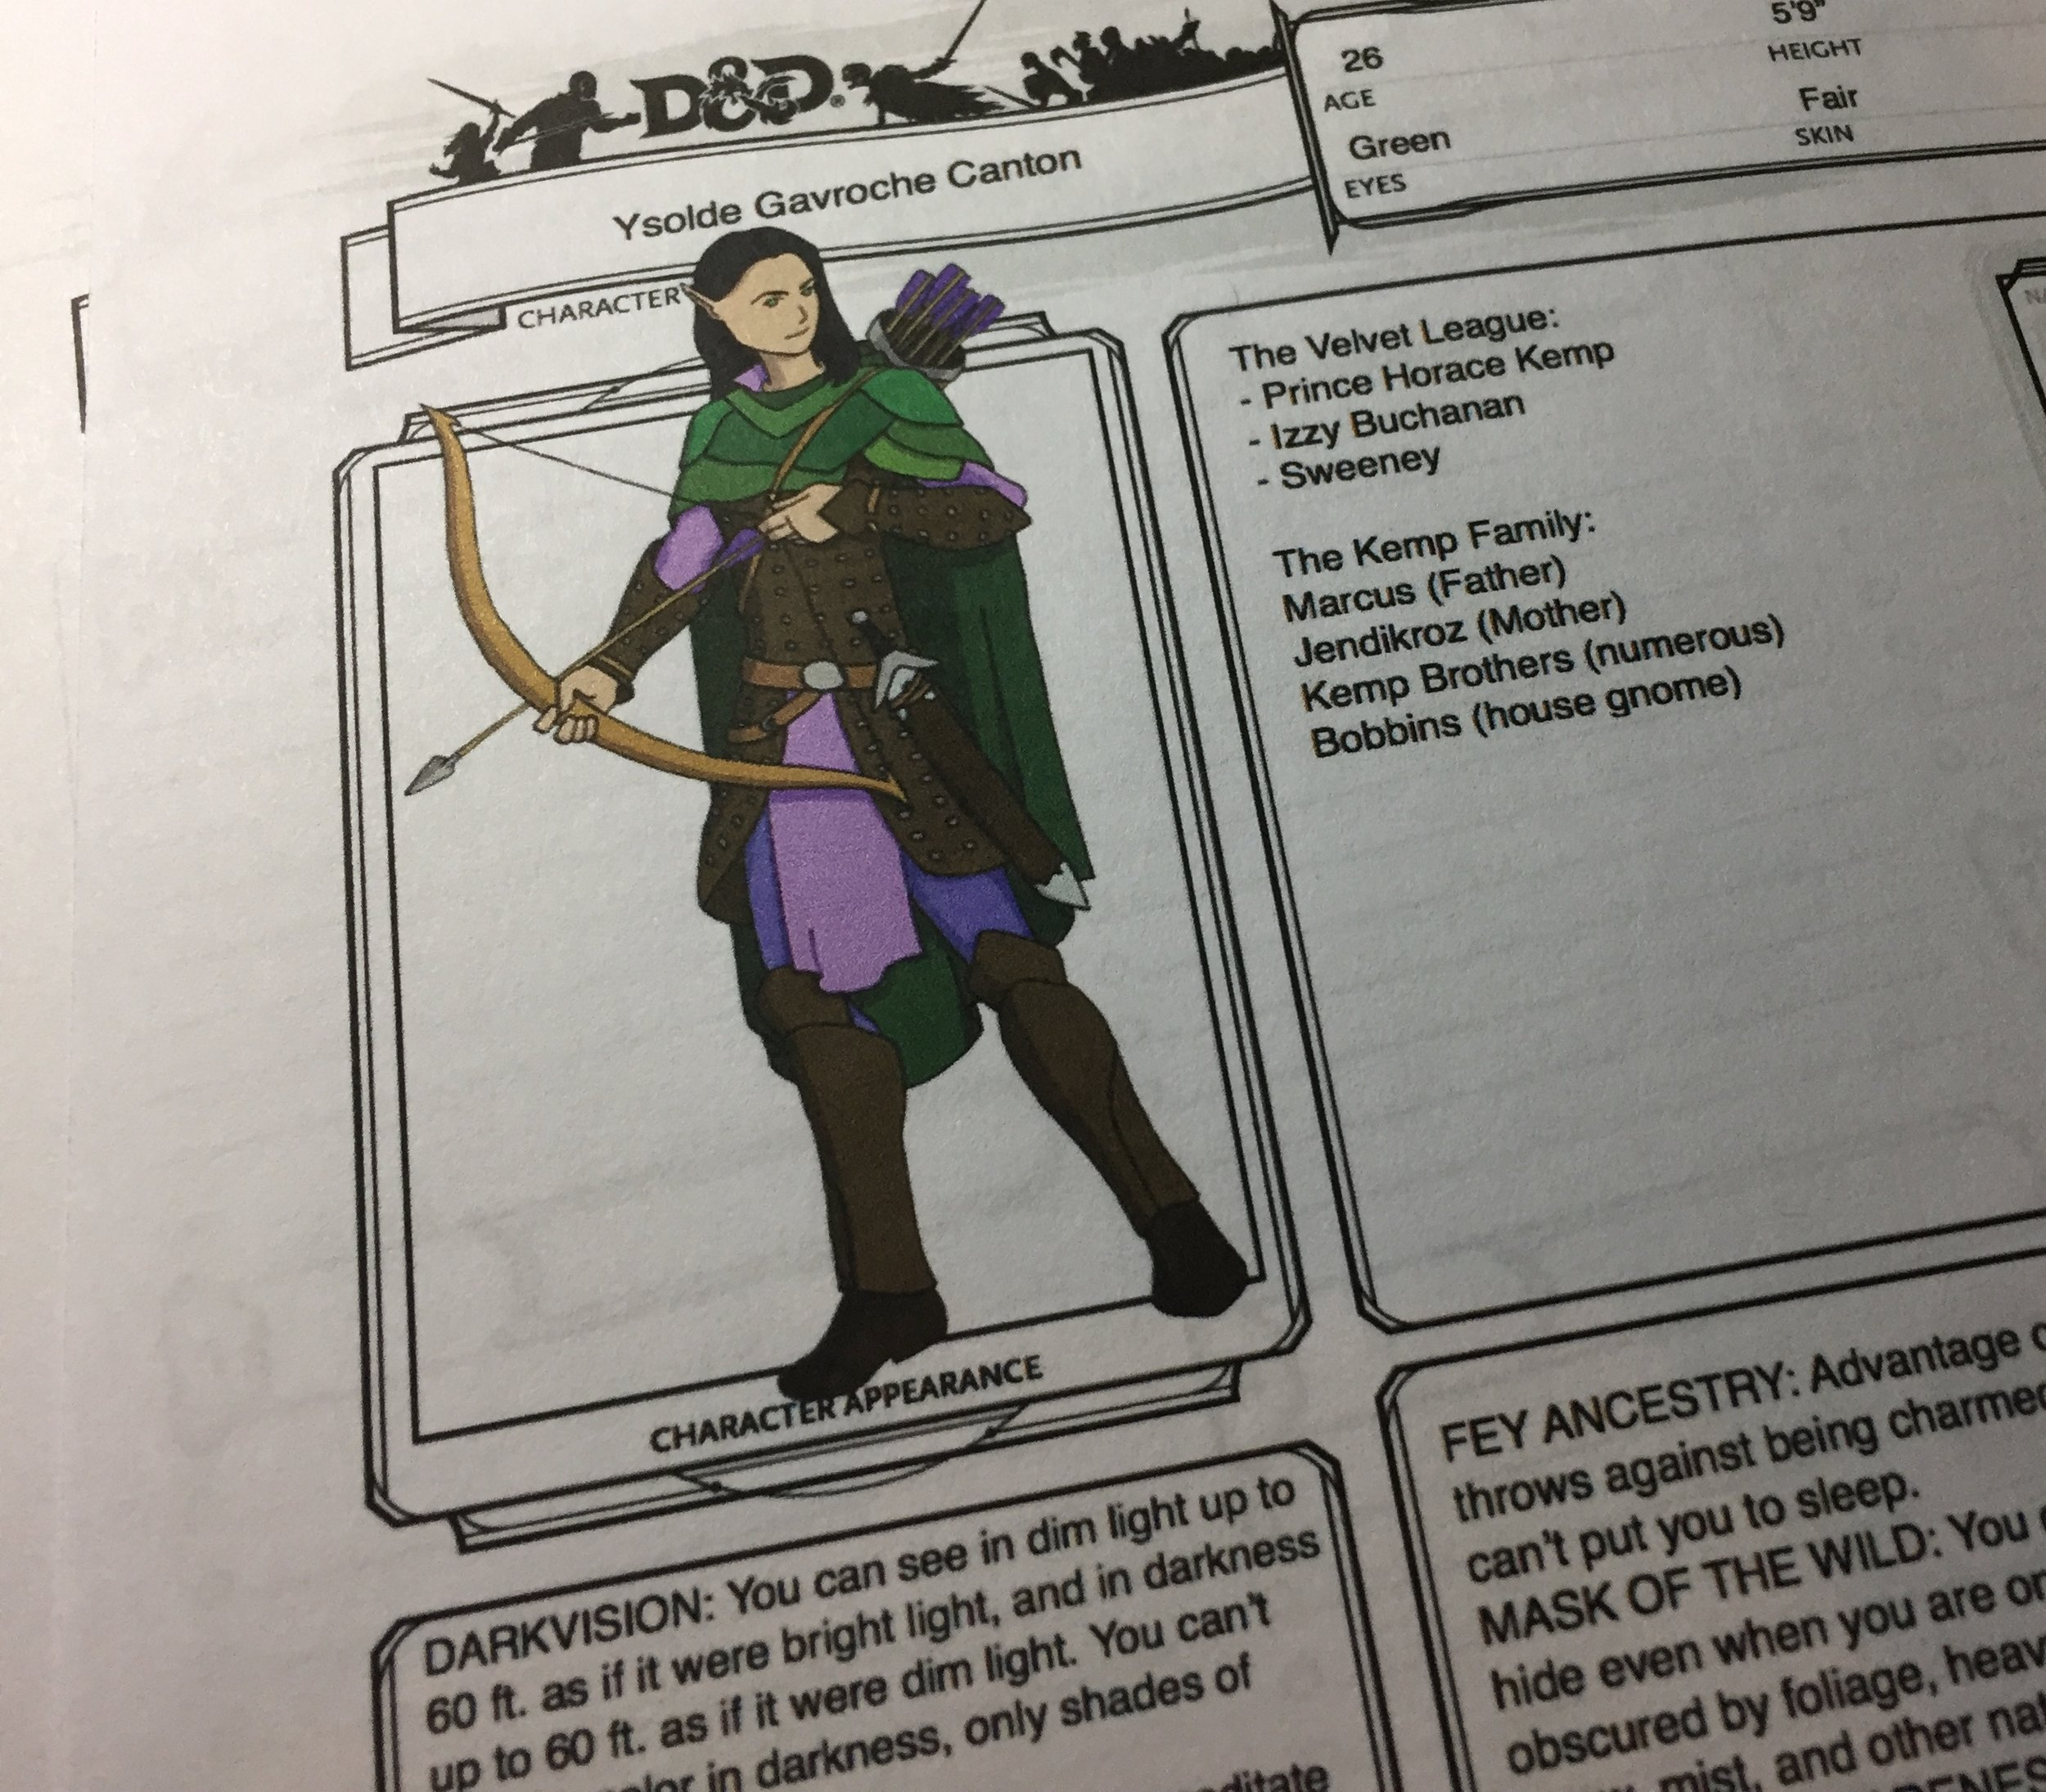 Copy of Ysolde's character sheet